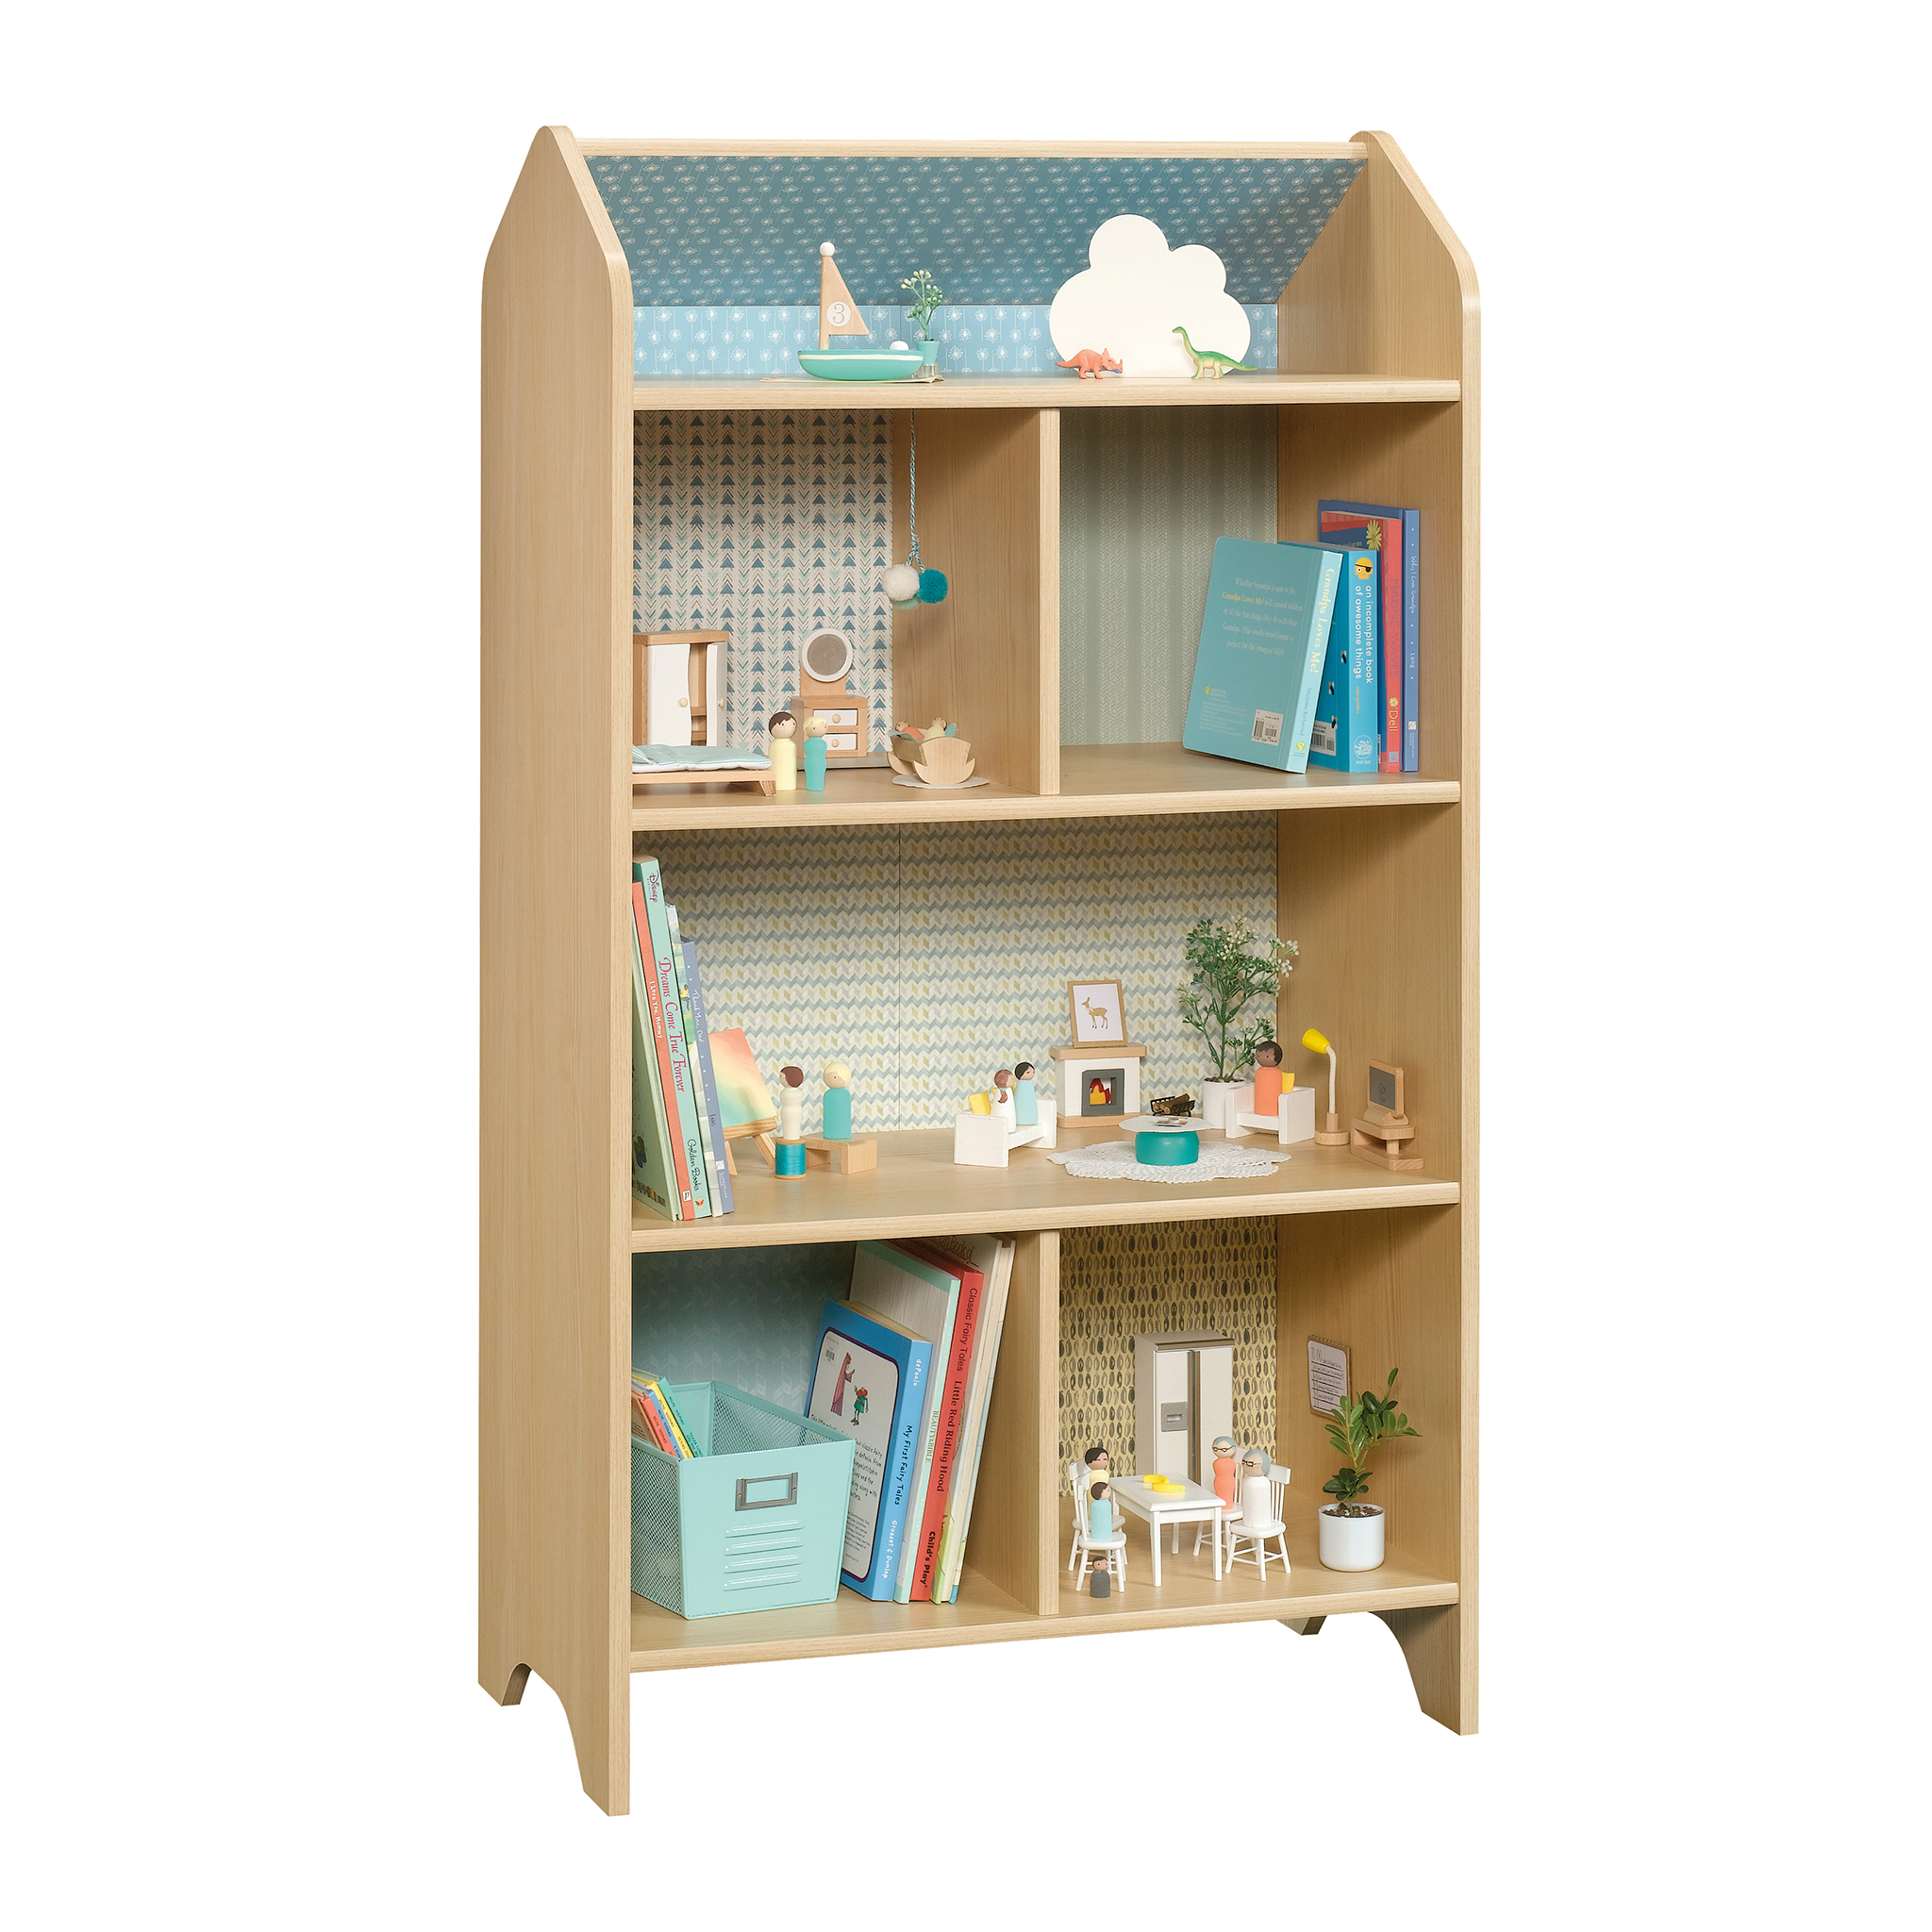 Better Homes & Gardens Cartwheel Dollhouse Bookcase